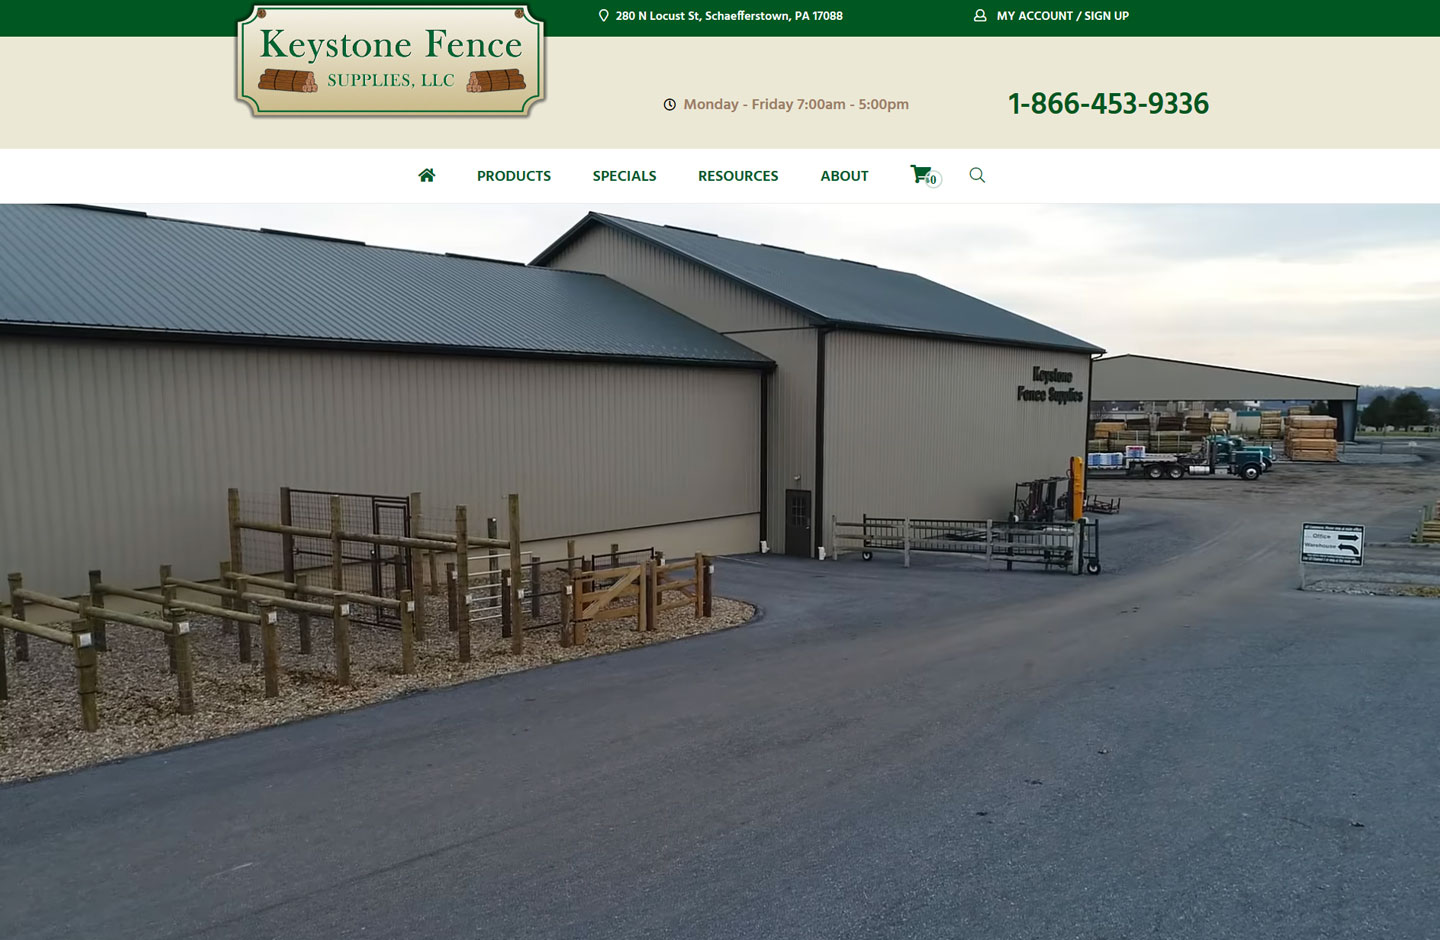 Keystone Fence Supplies